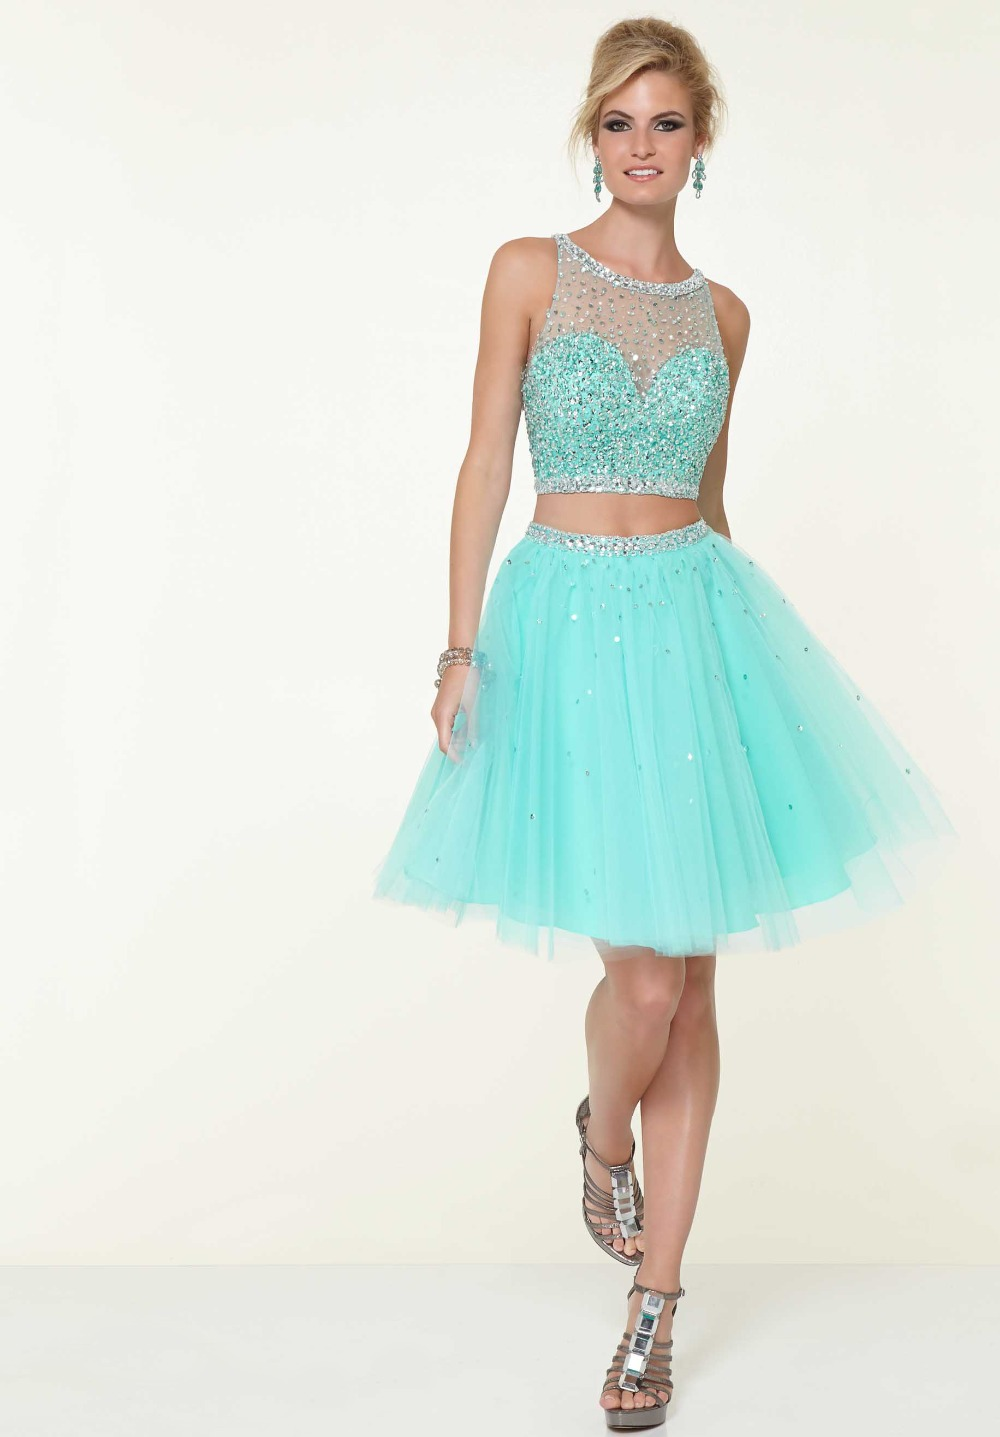 2 Piece Prom Dresses Inexpensive | Dress images